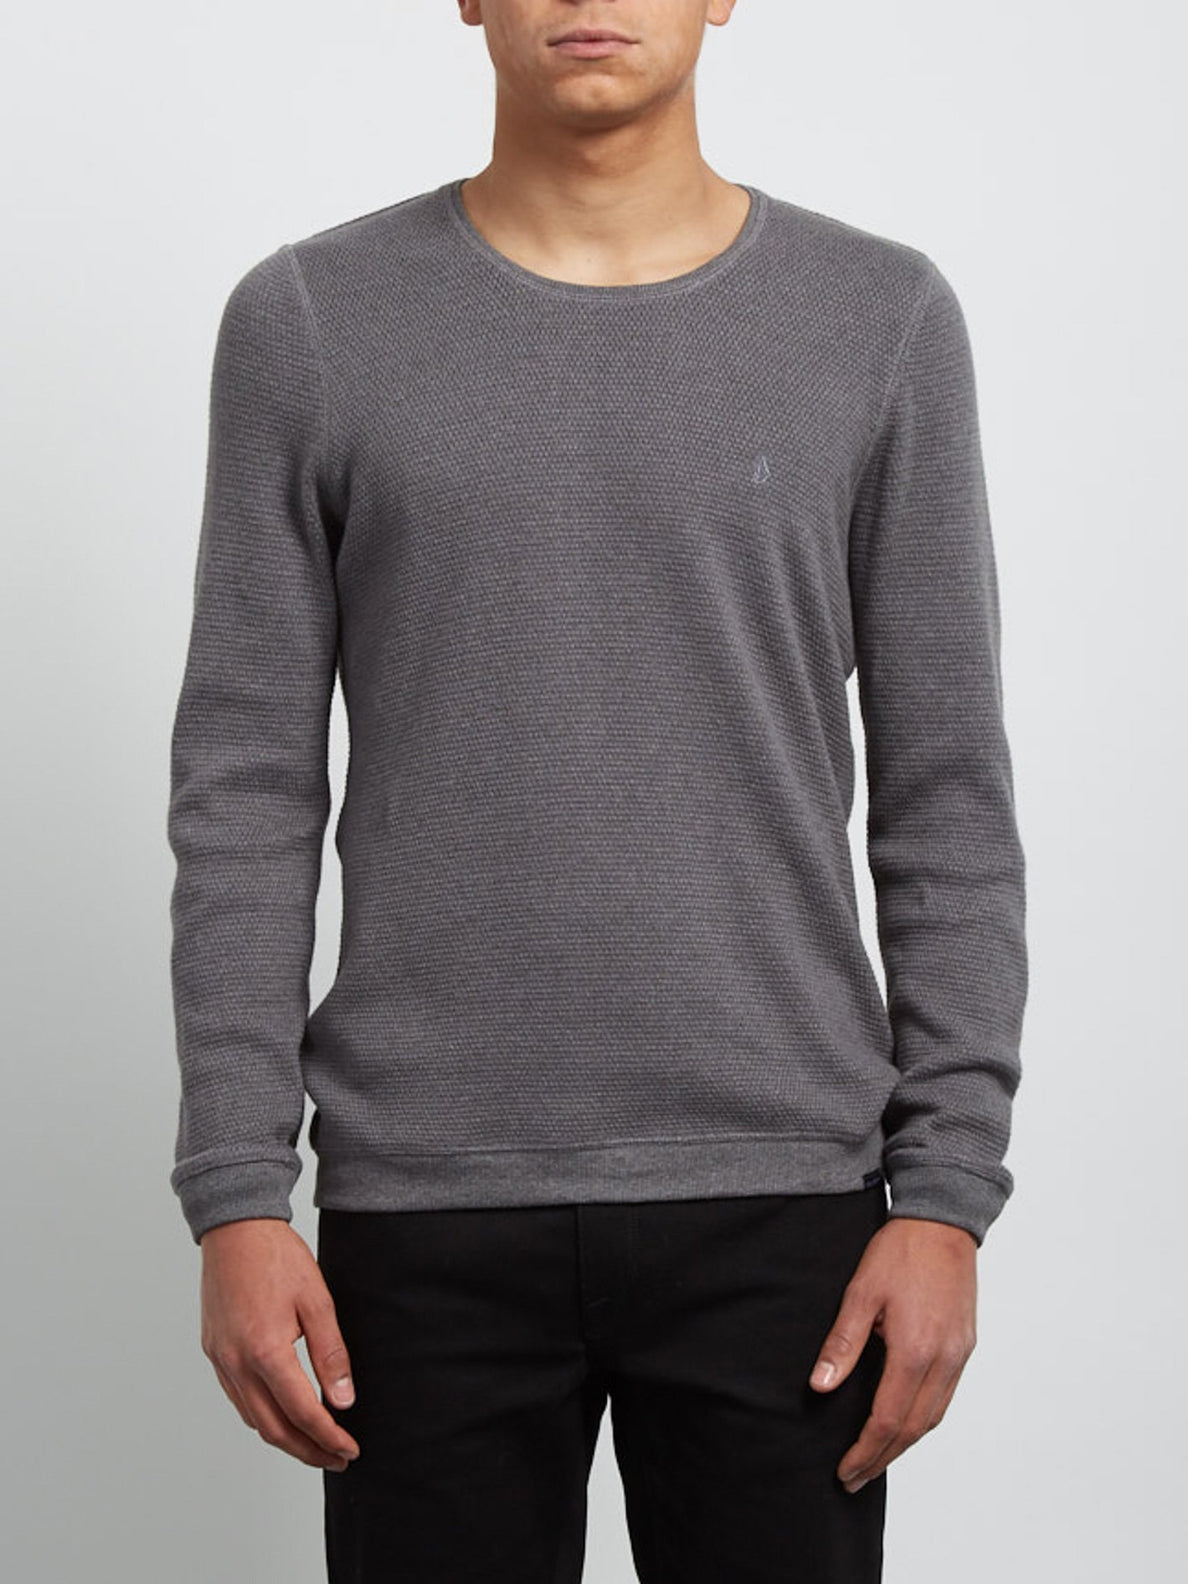 Sundown Sweater - Heather Grey